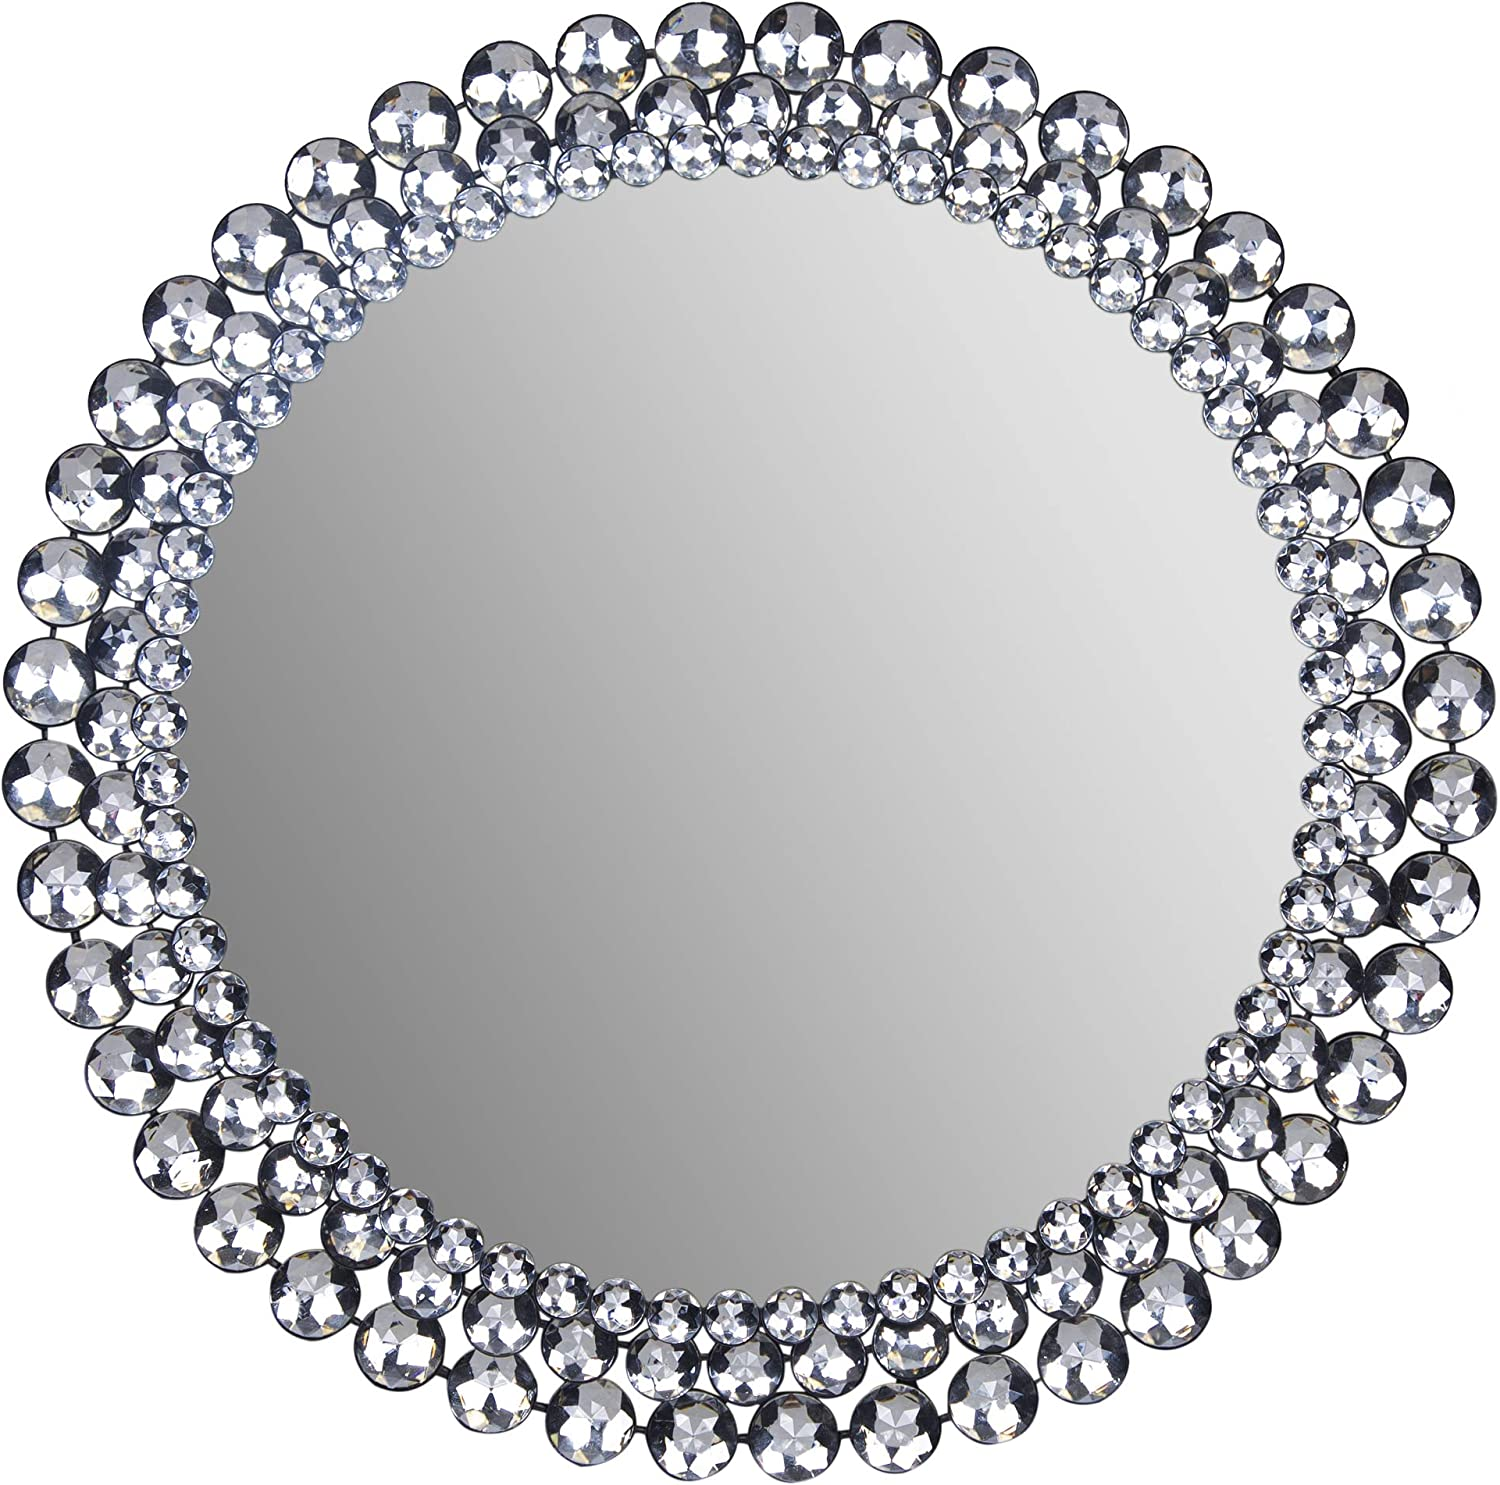 "Patton Wall Decor Round Jeweled Accent Mirror, 24"" x 24"""